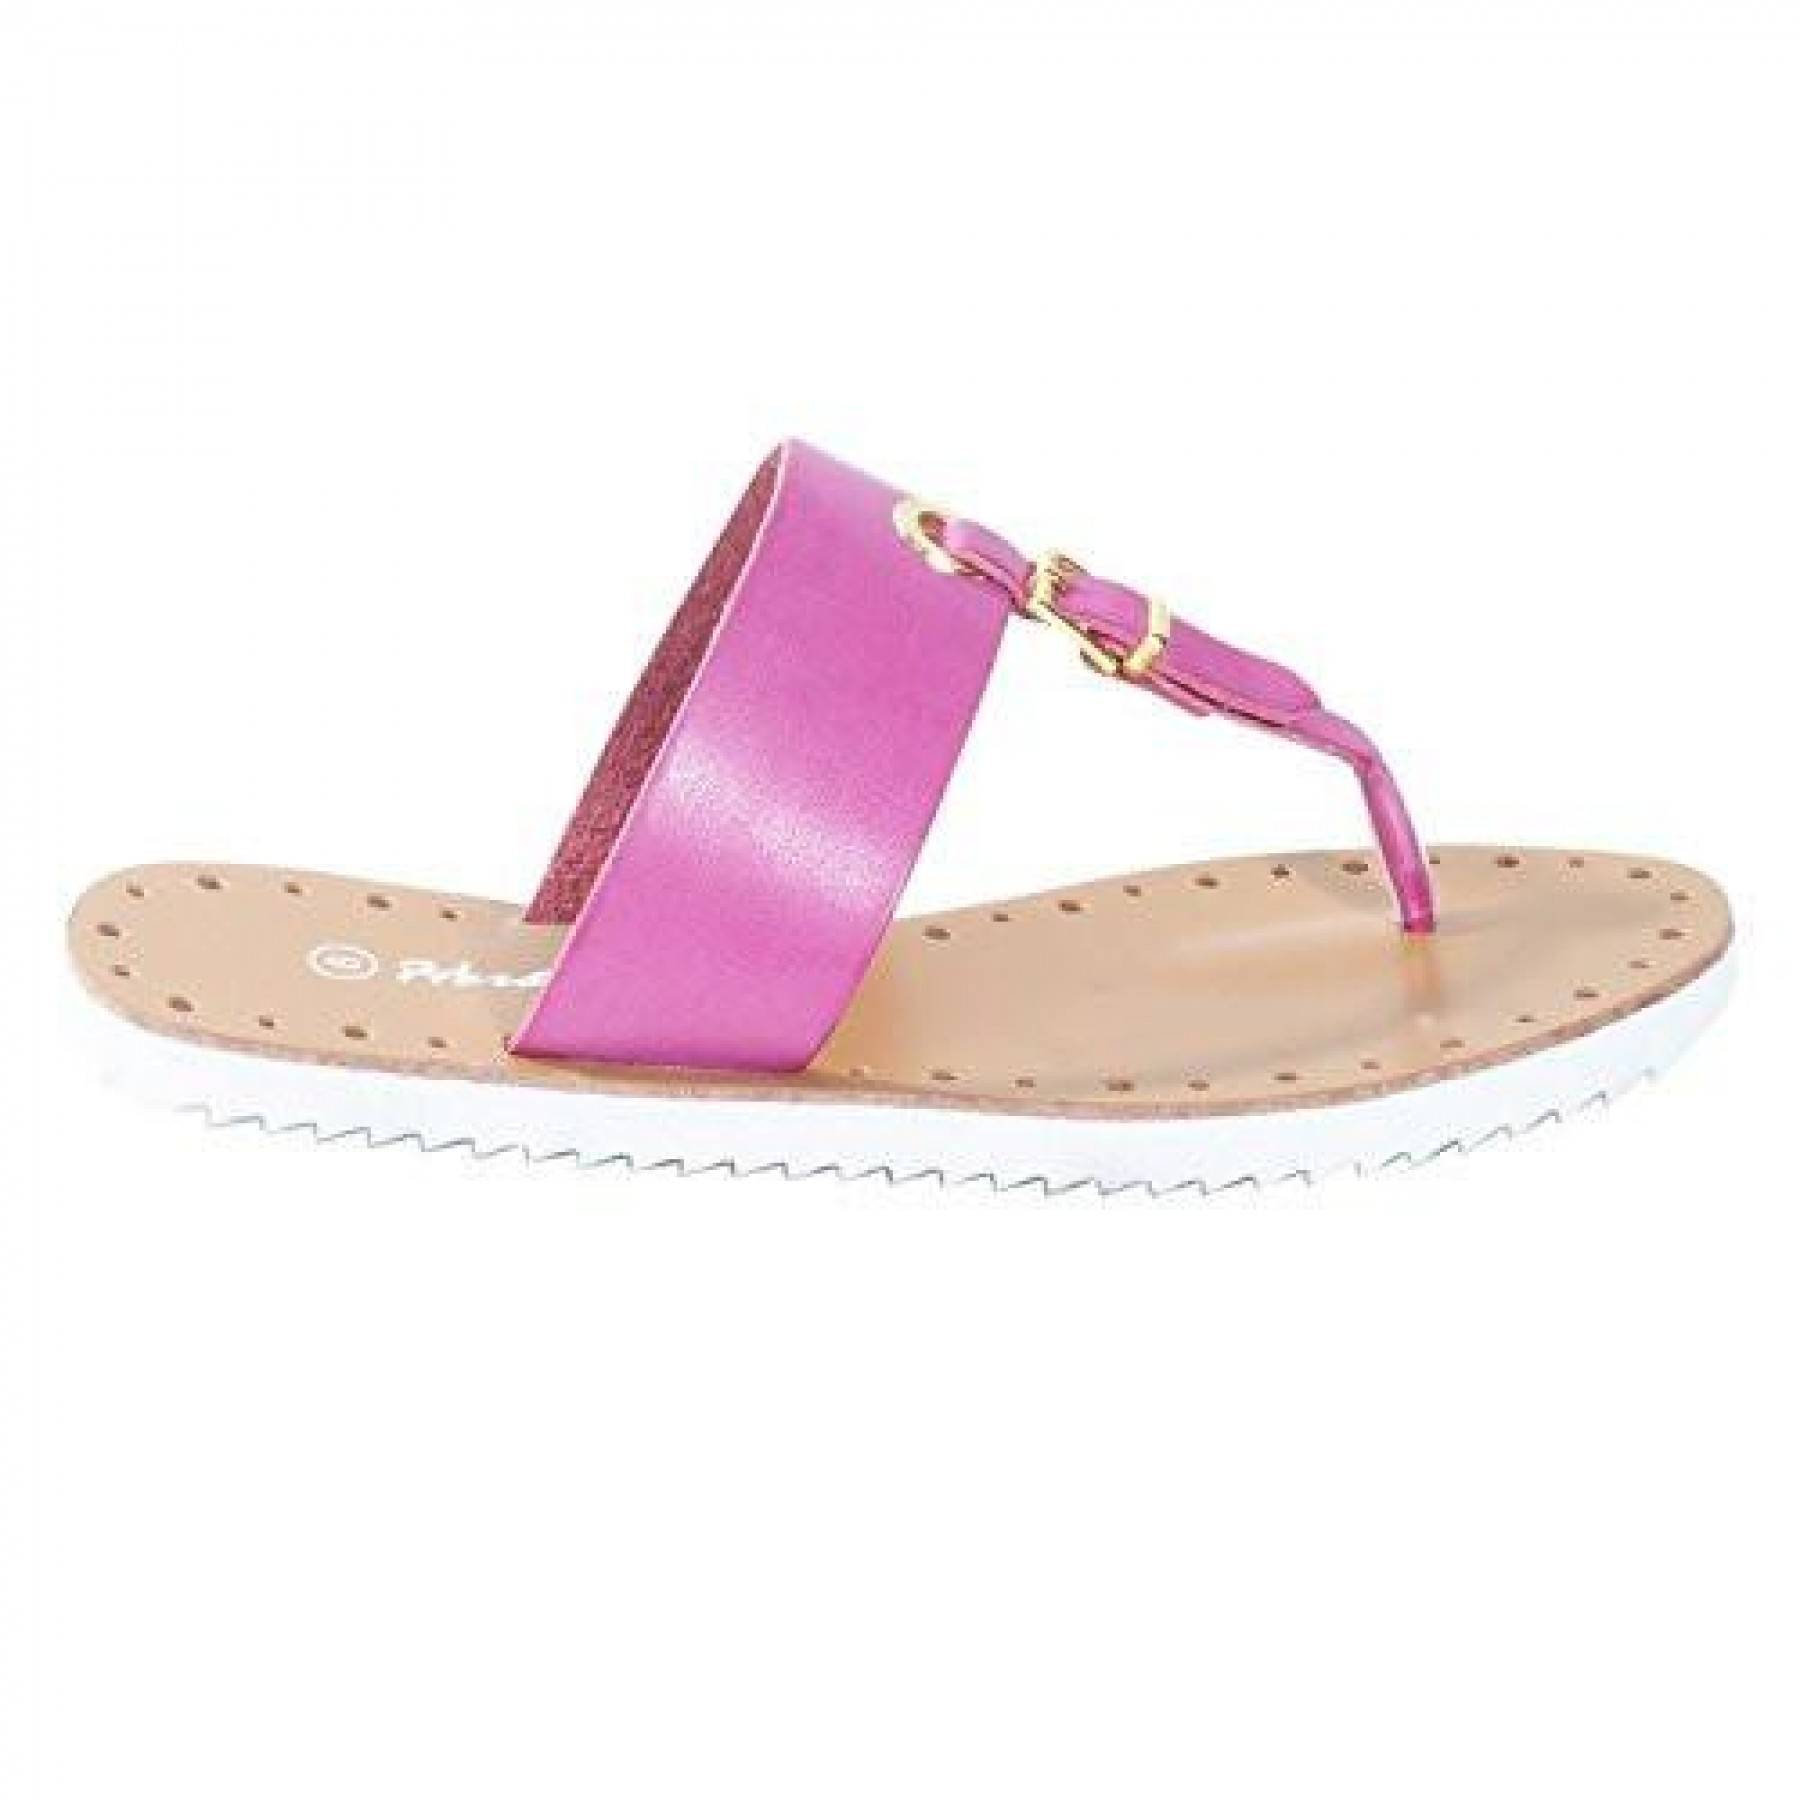 Women's Fuchsia Manmade Fizzing T-Strap Sandal with Bright Buckle Accent